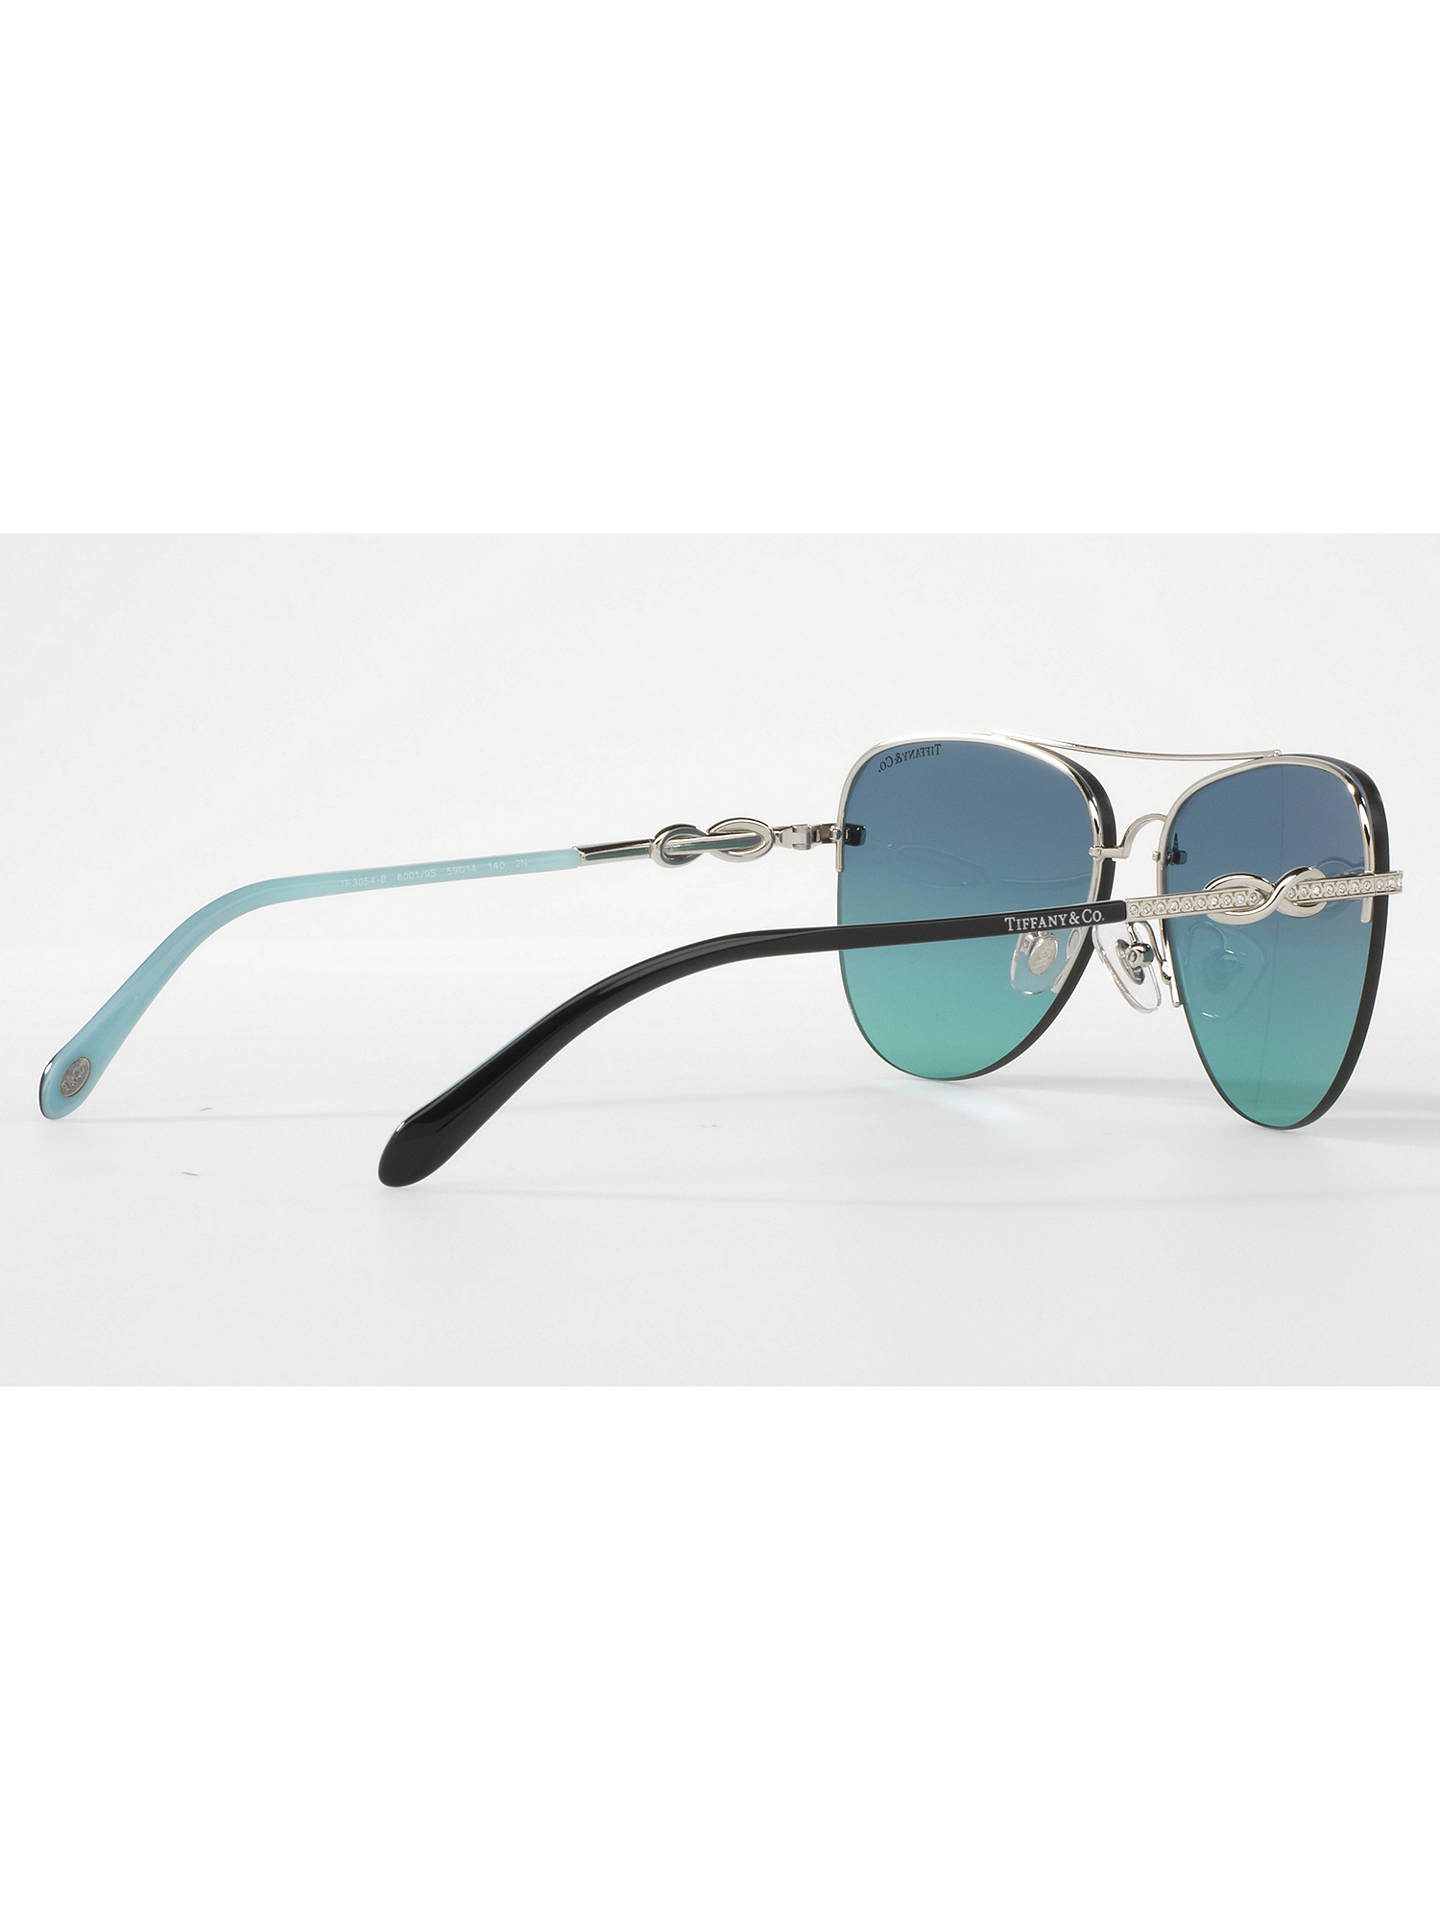 619fef61fdc ... BuyTiffany   Co TF3054B Aviator Sunglasses